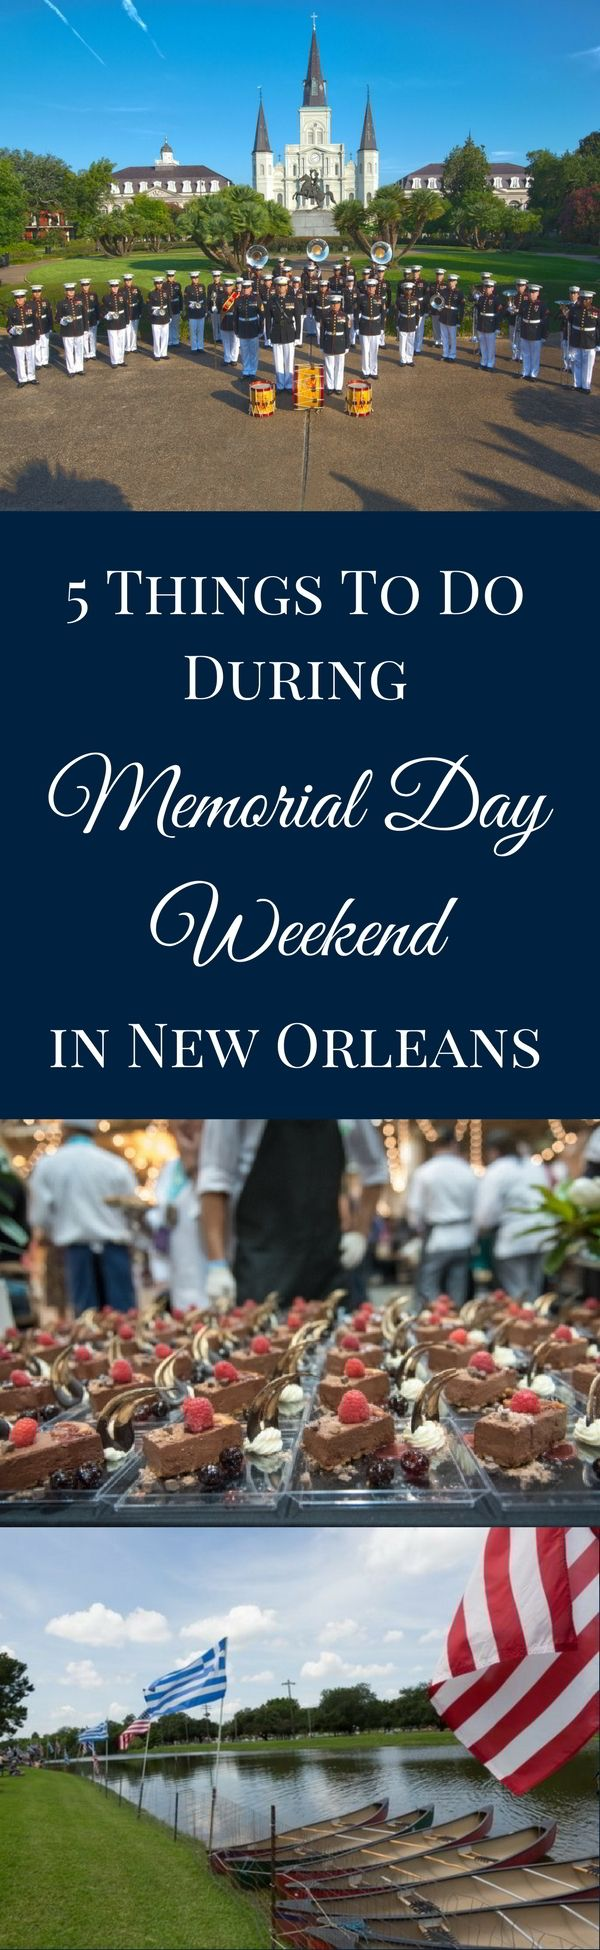 Memorial Day weekend in New Orleans brings with it several opportunities to honor fallen military members or simply enjoy a long weekend in the city. As always, we're centrally located so that you can walk or find easy transportation to all the best events happening in New Orleans. Take your pick below!